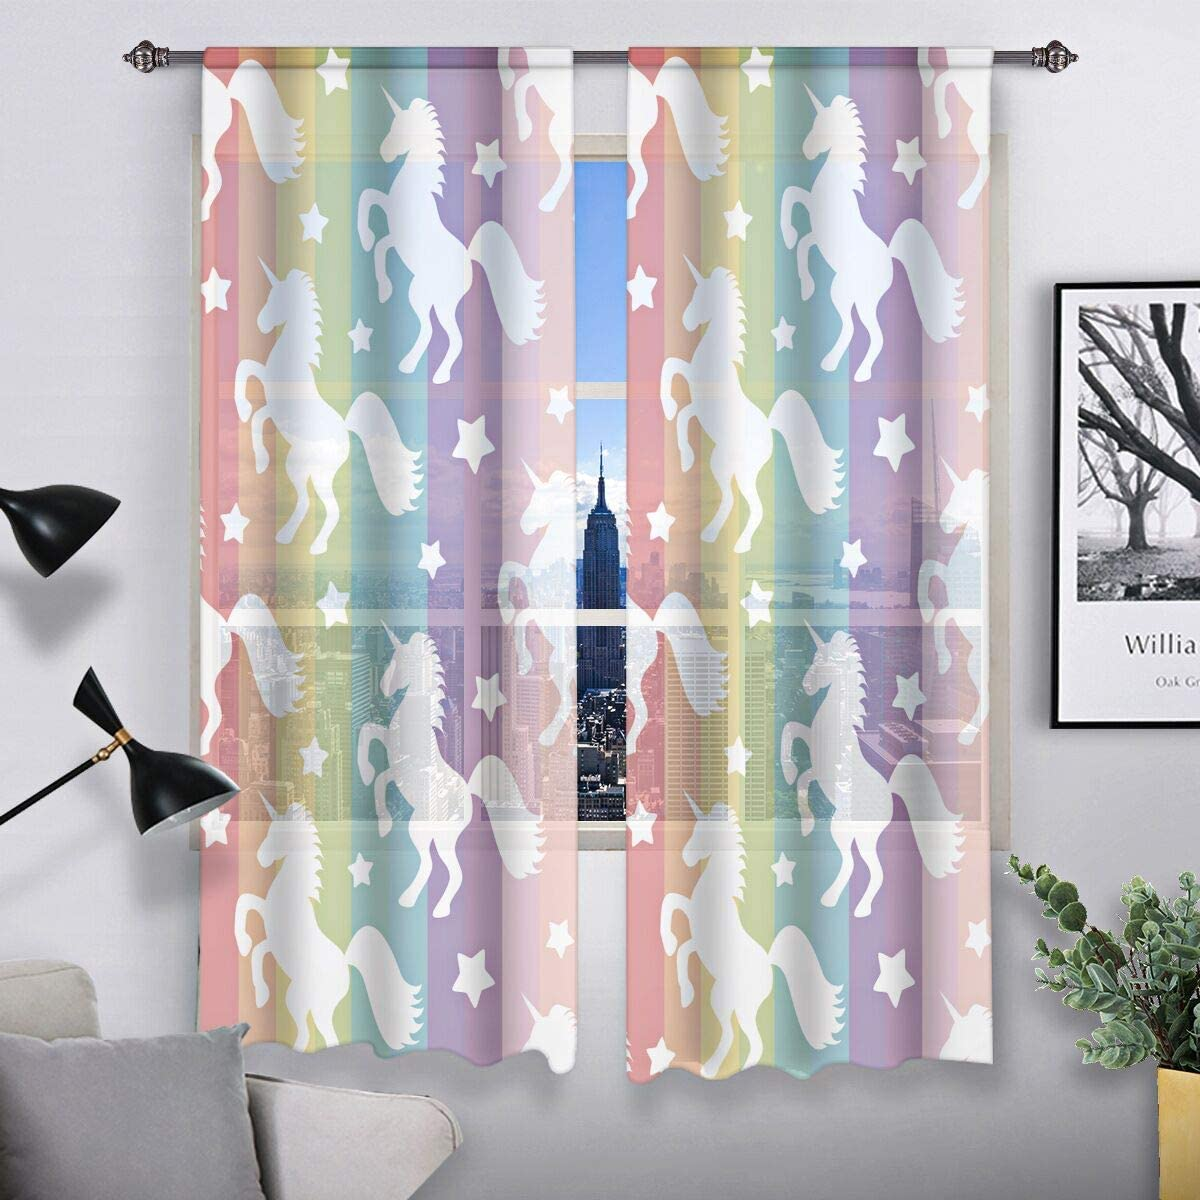 QH Rainbow Unicorn Window Sheer Curtains for Living Room Bedroom Kids Room 55 W x 78 L Set of 2 Panels